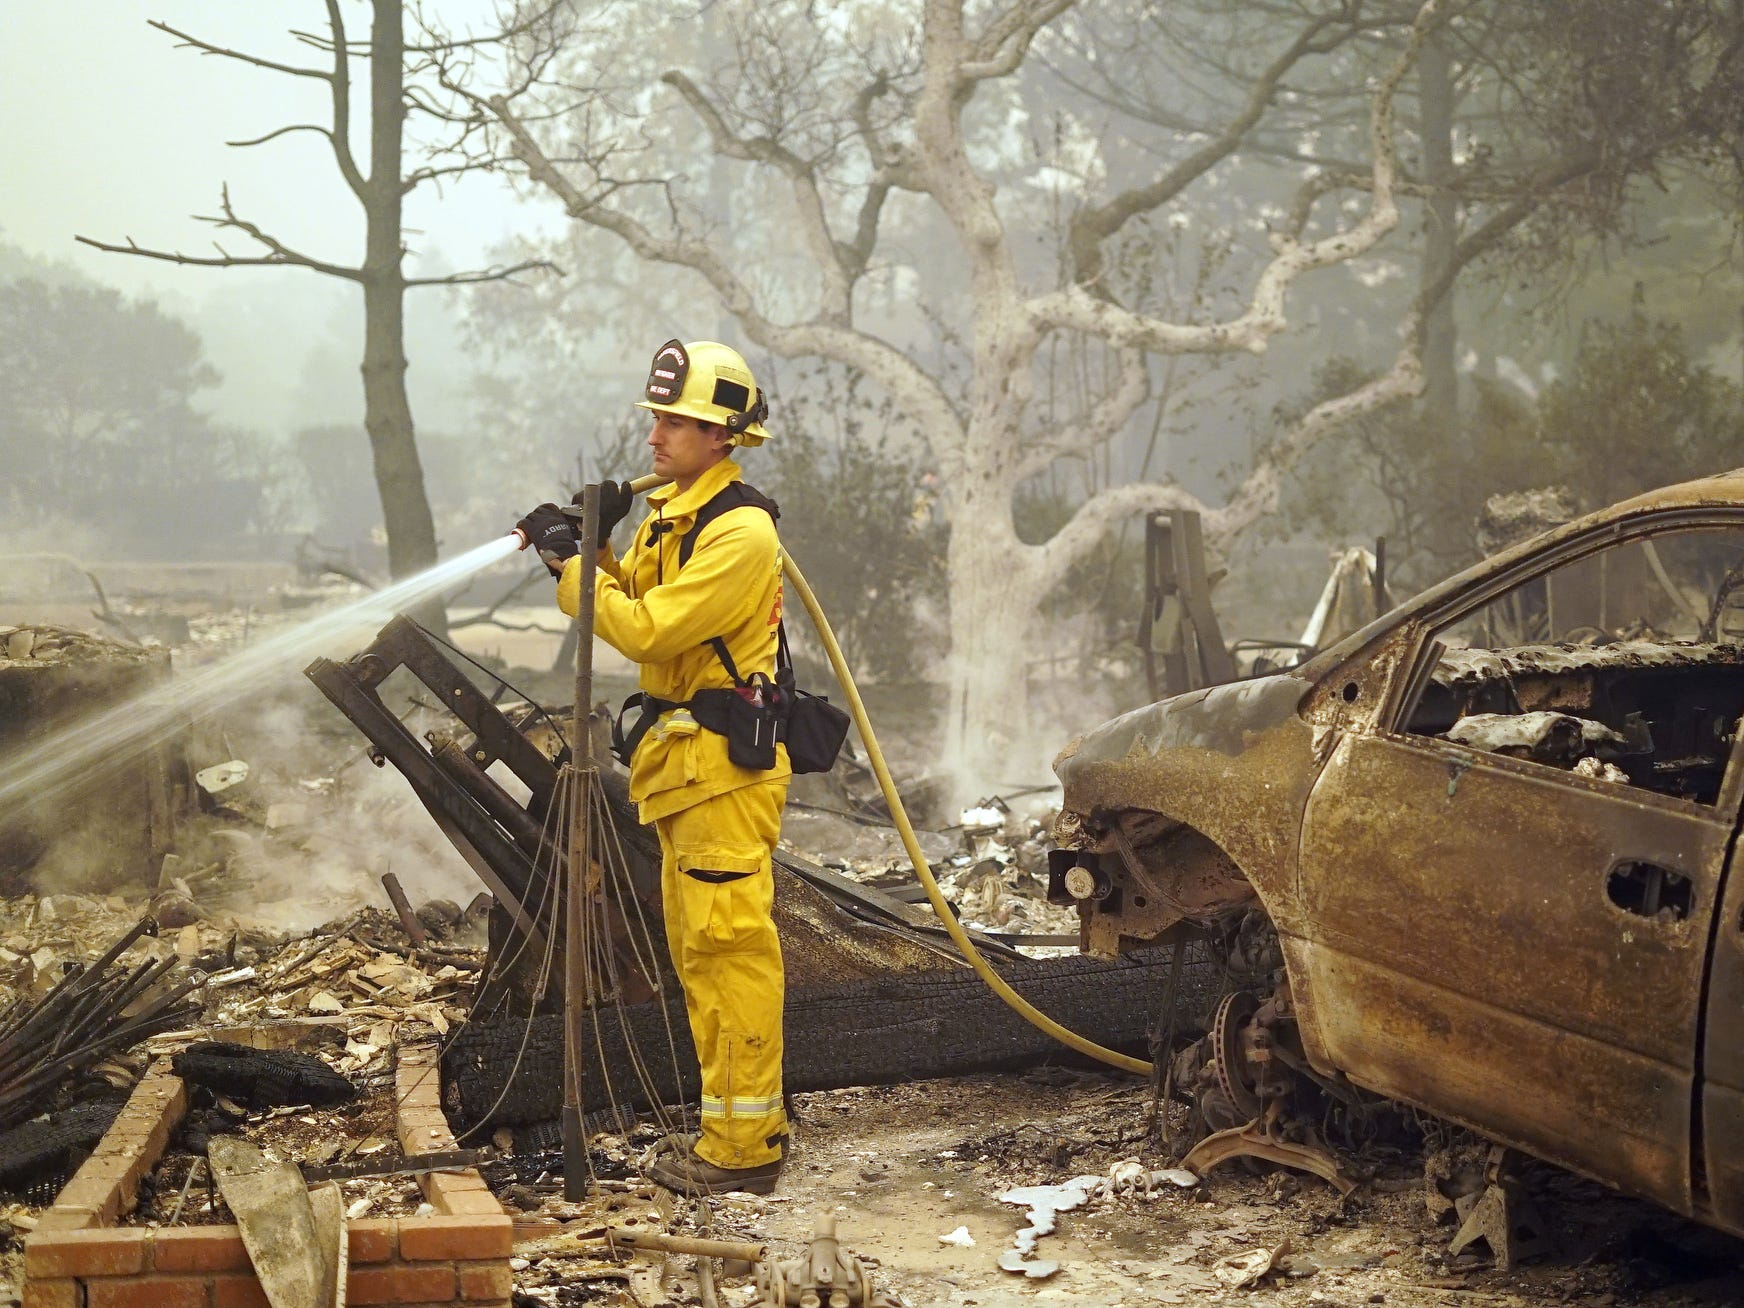 Bakersfield, California-based firefighter Marc Eyherebide, 33, sprays down a destroyed home with water to prevent it from sparking any more fires in Paradise, Calif., following the Camp Fire devastation on Nov. 9, 2018.